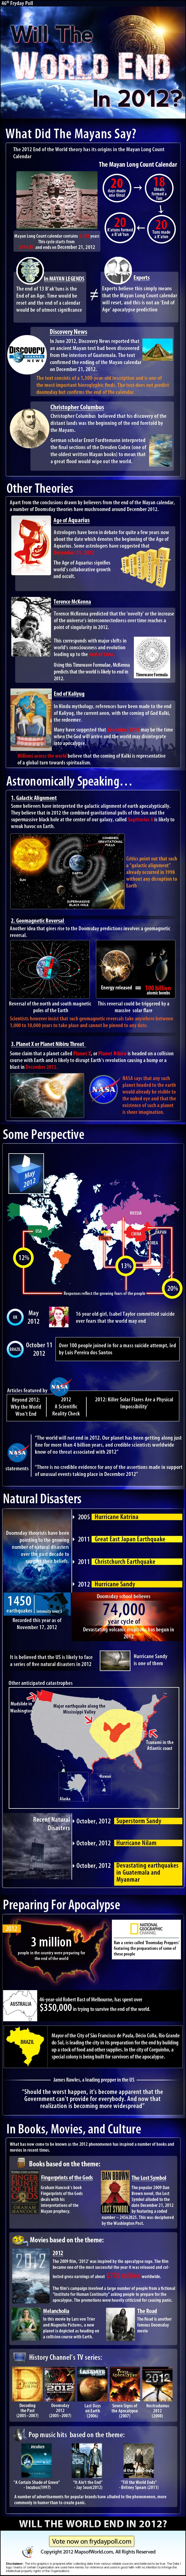 Find In-depth Review And Infographic About 'End of The World in 2012'. Learn about the Mayan calendar, new-age thought, doomsday predictions,  natural disasters, preparing for apocalypse and influence in books, movies and culture.